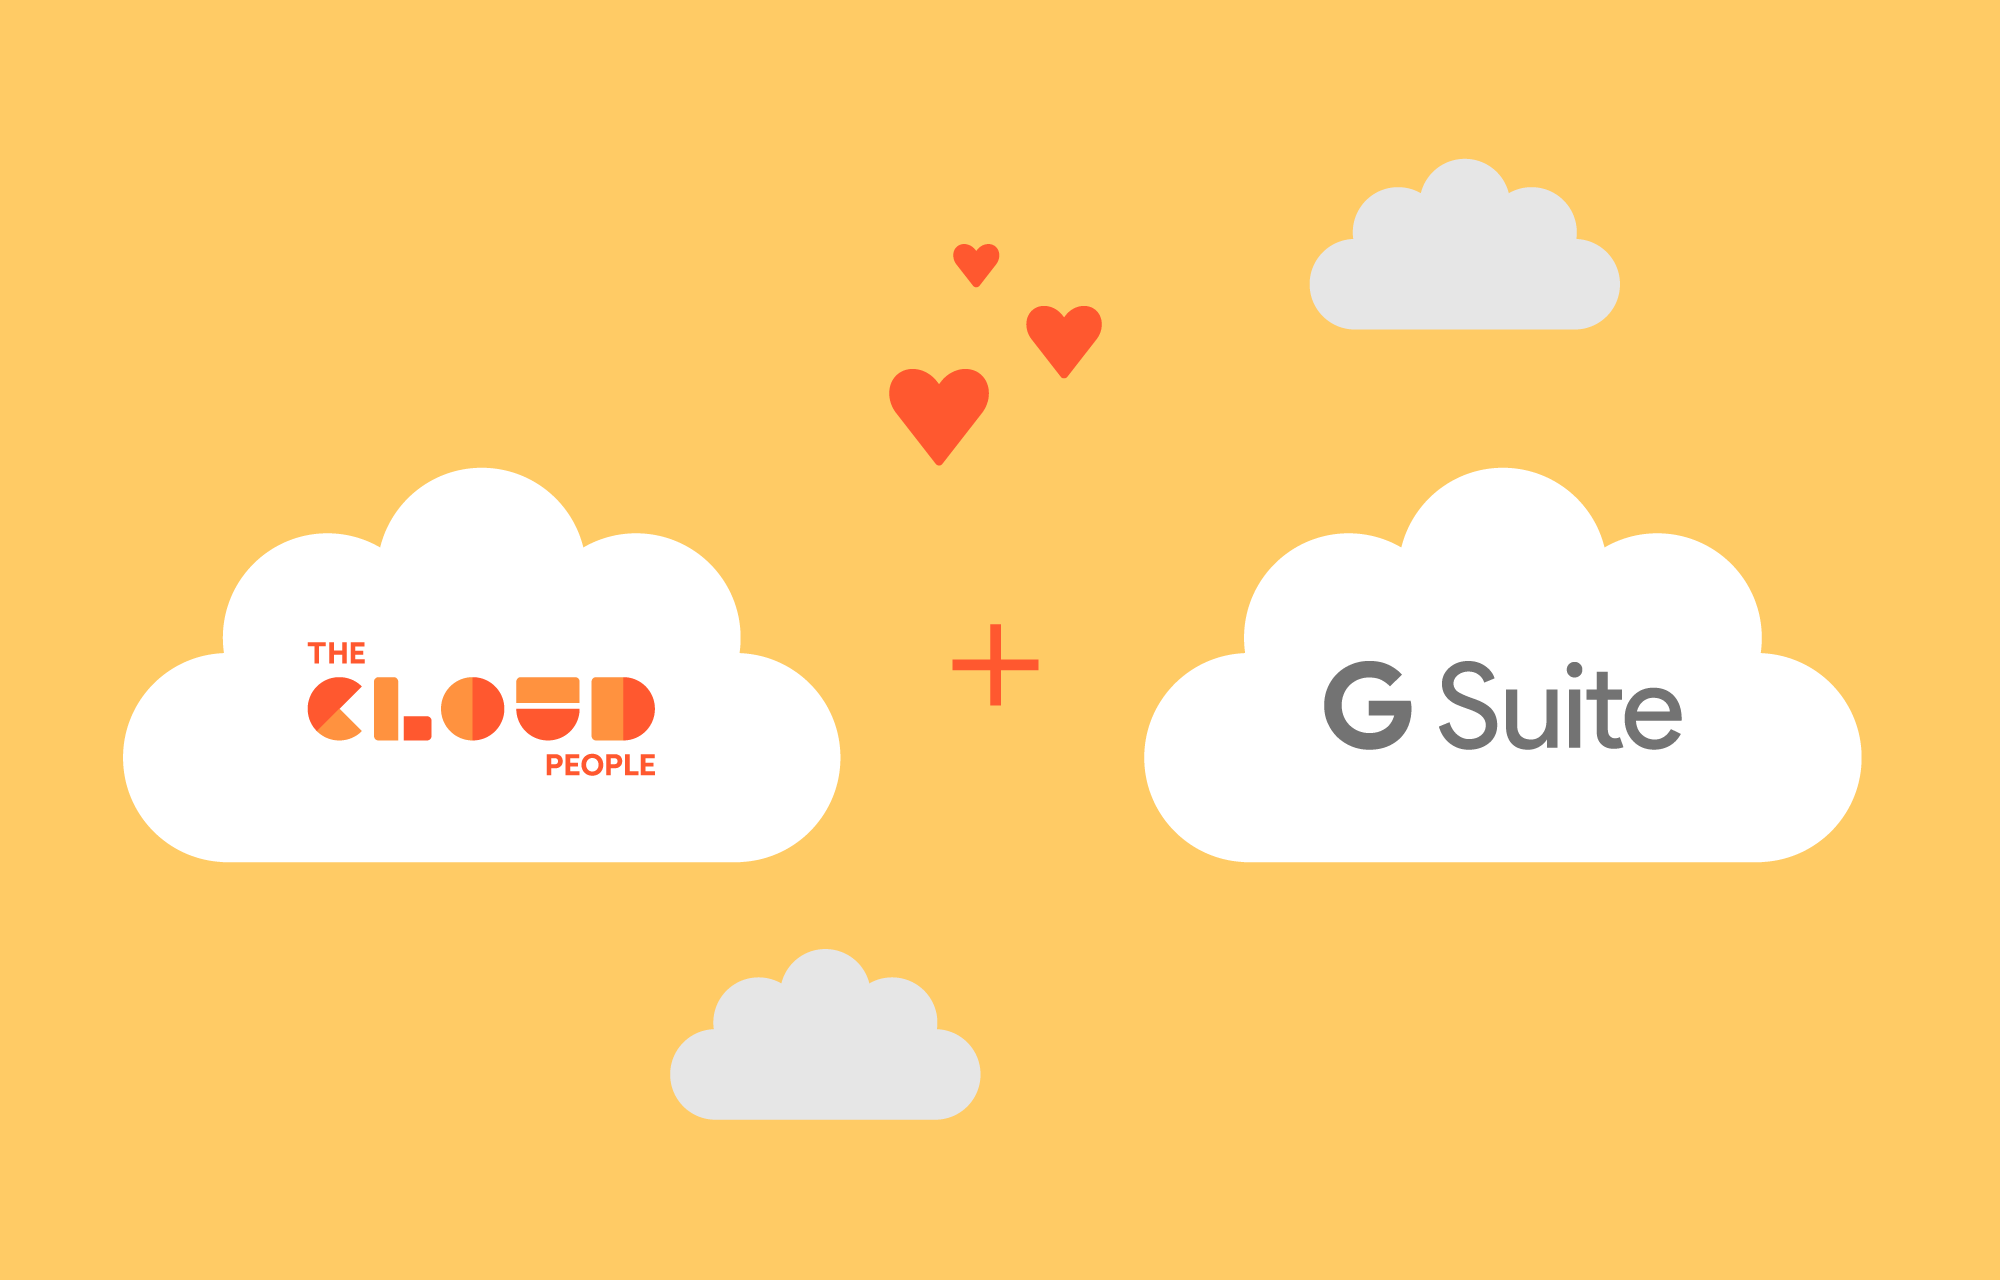 Why should you choose G Suite for your business?